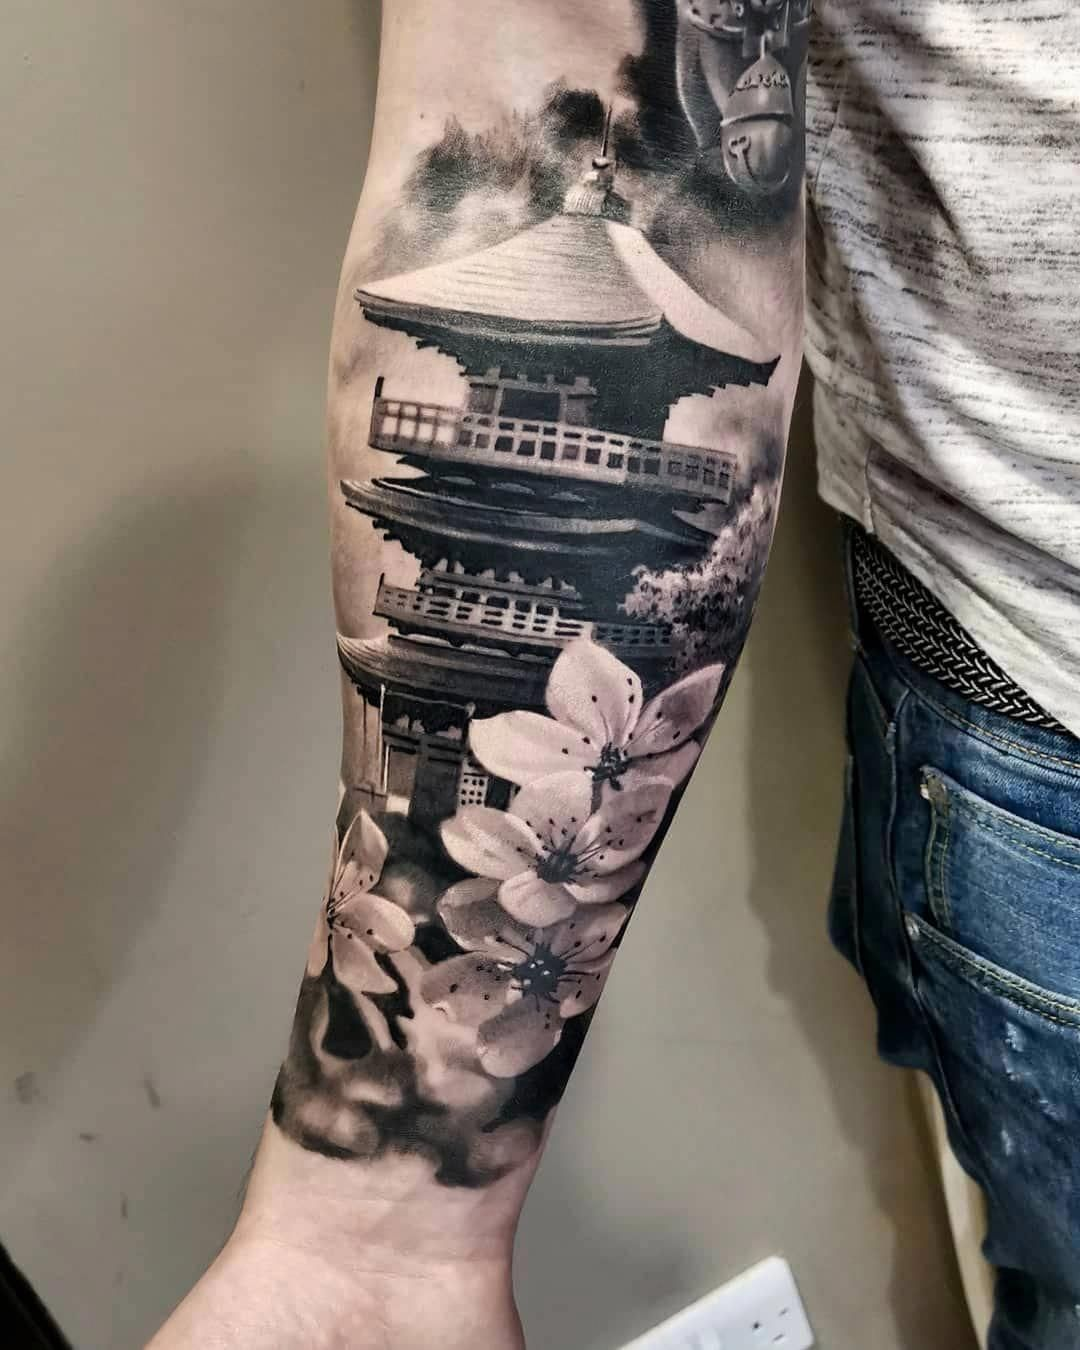 Japanese Temple Tattoo Meaning : japanese, temple, tattoo, meaning, Japanese, Tattoos, Meaning, #Japanesetattoos, Forearm, Tattoos,, Guys,, Temple, Tattoo